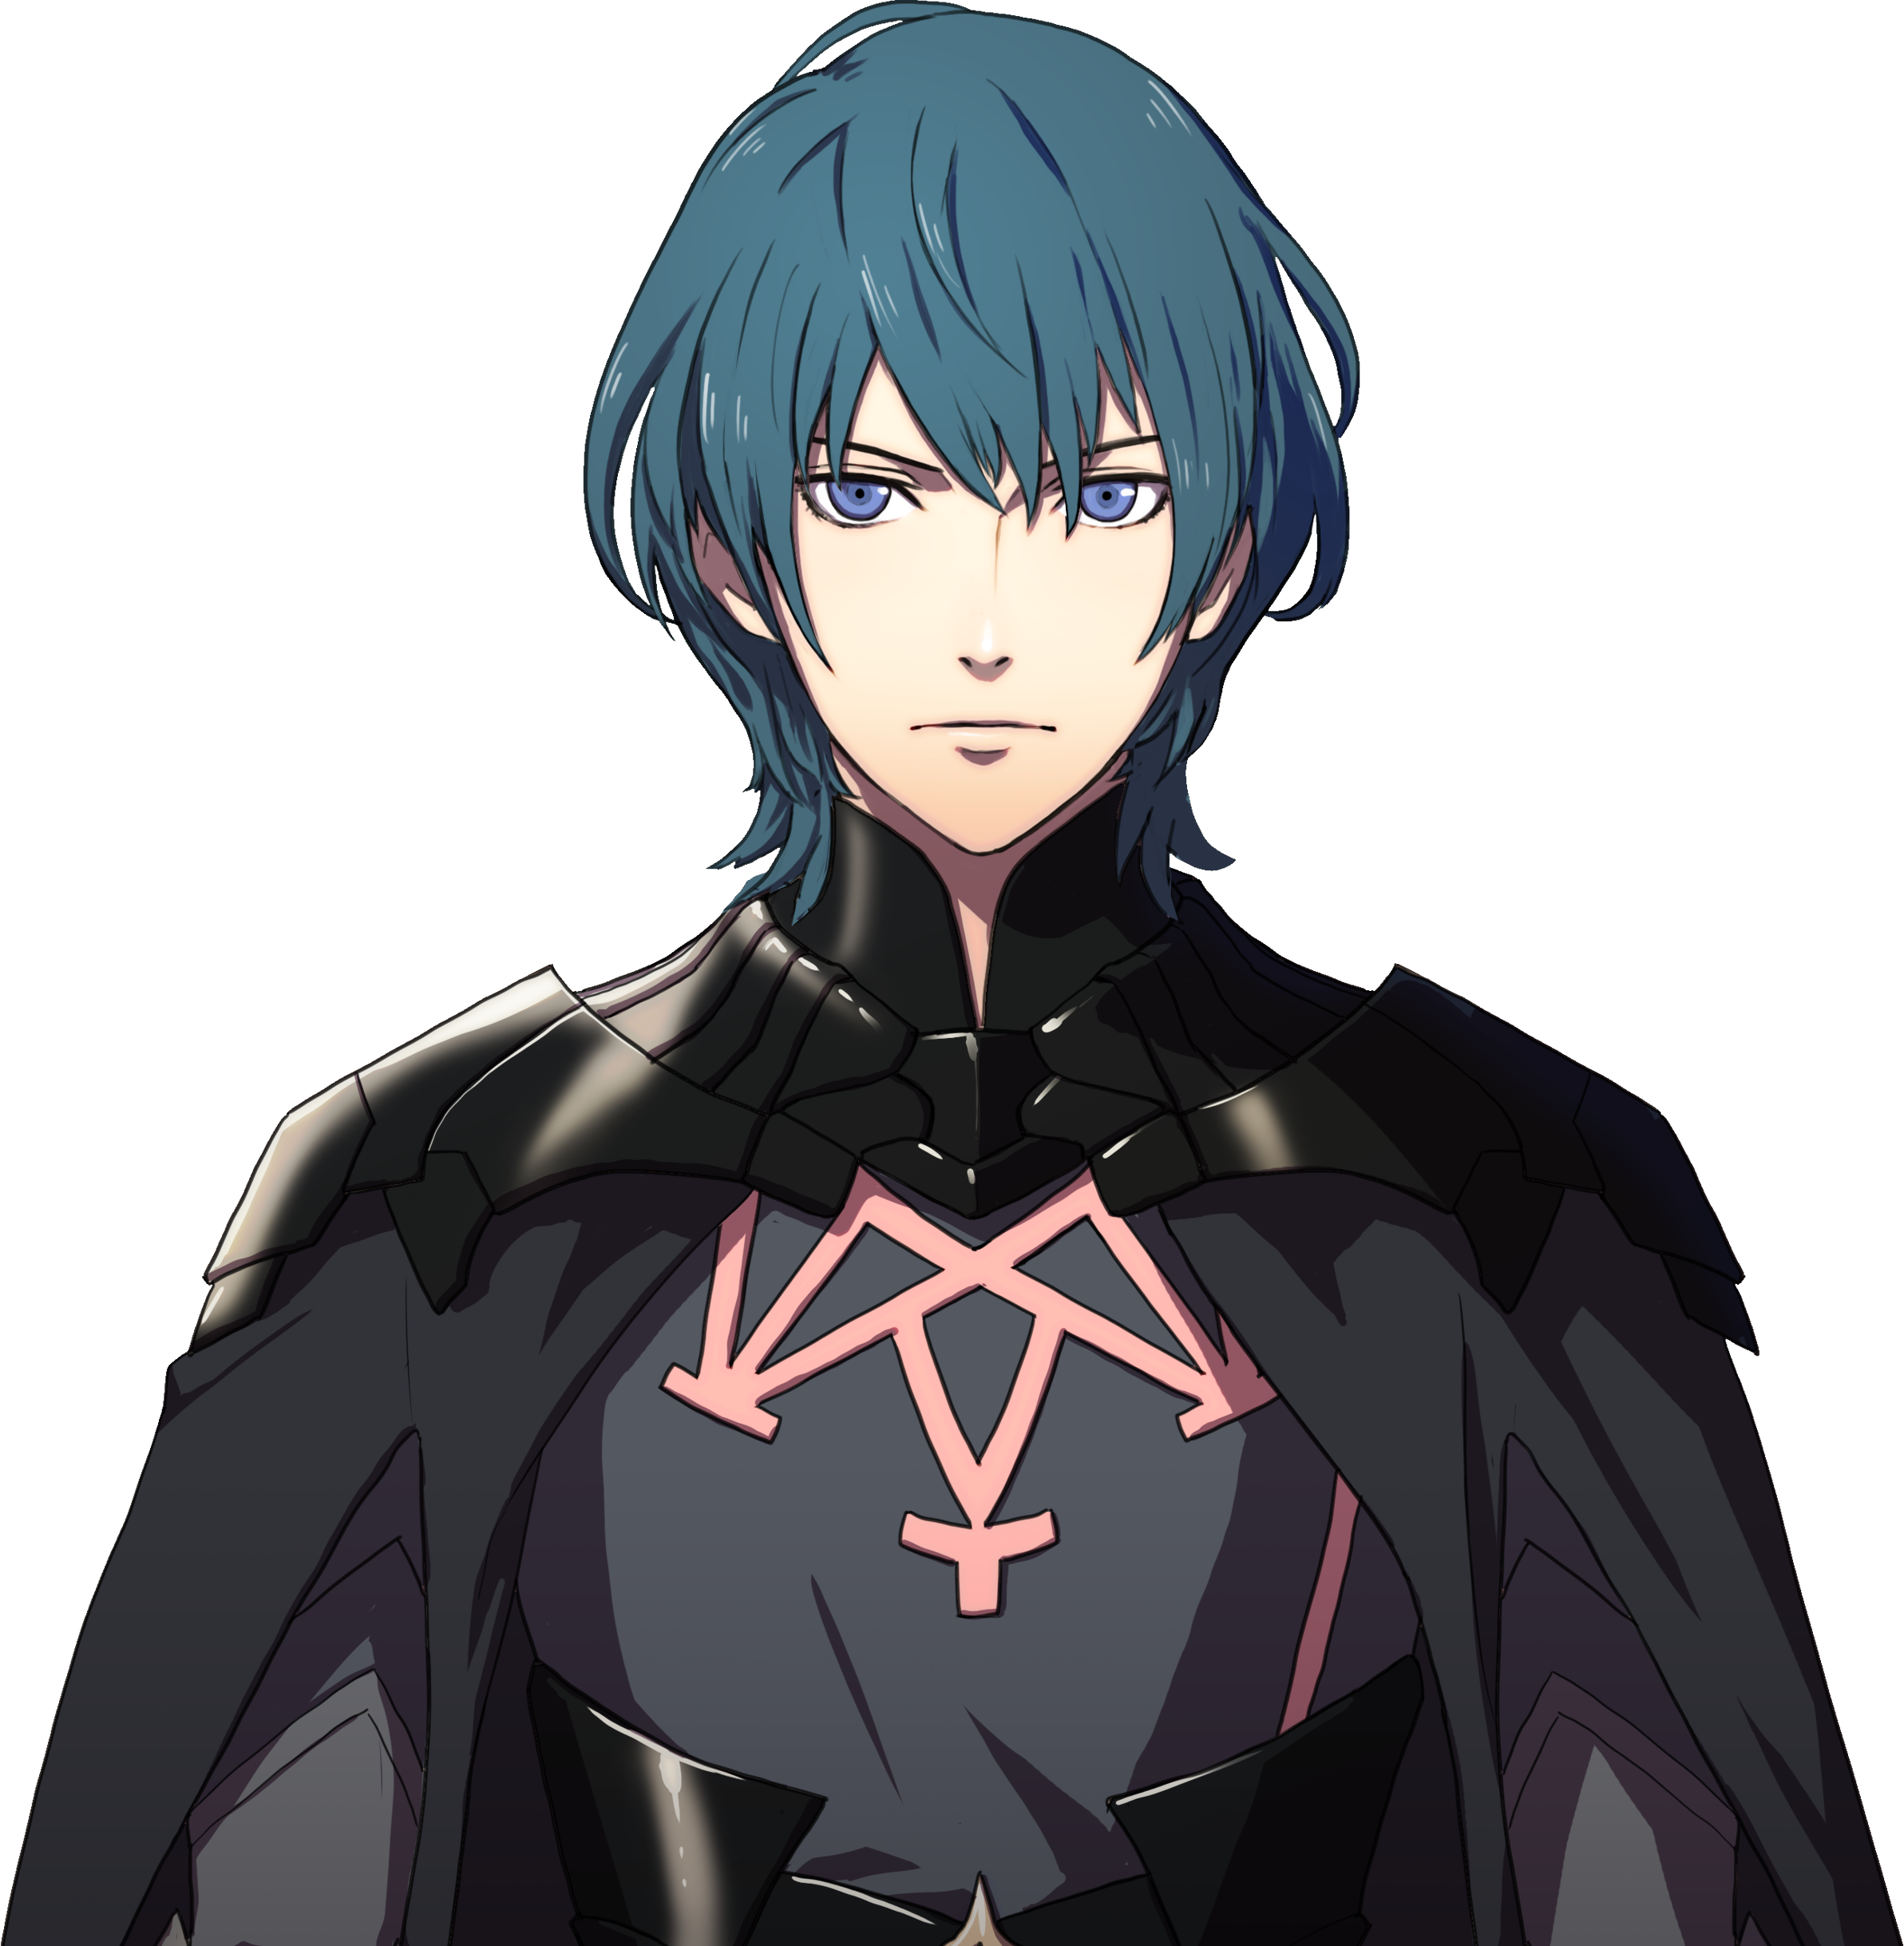 List of characters in Fire Emblem: Three Houses